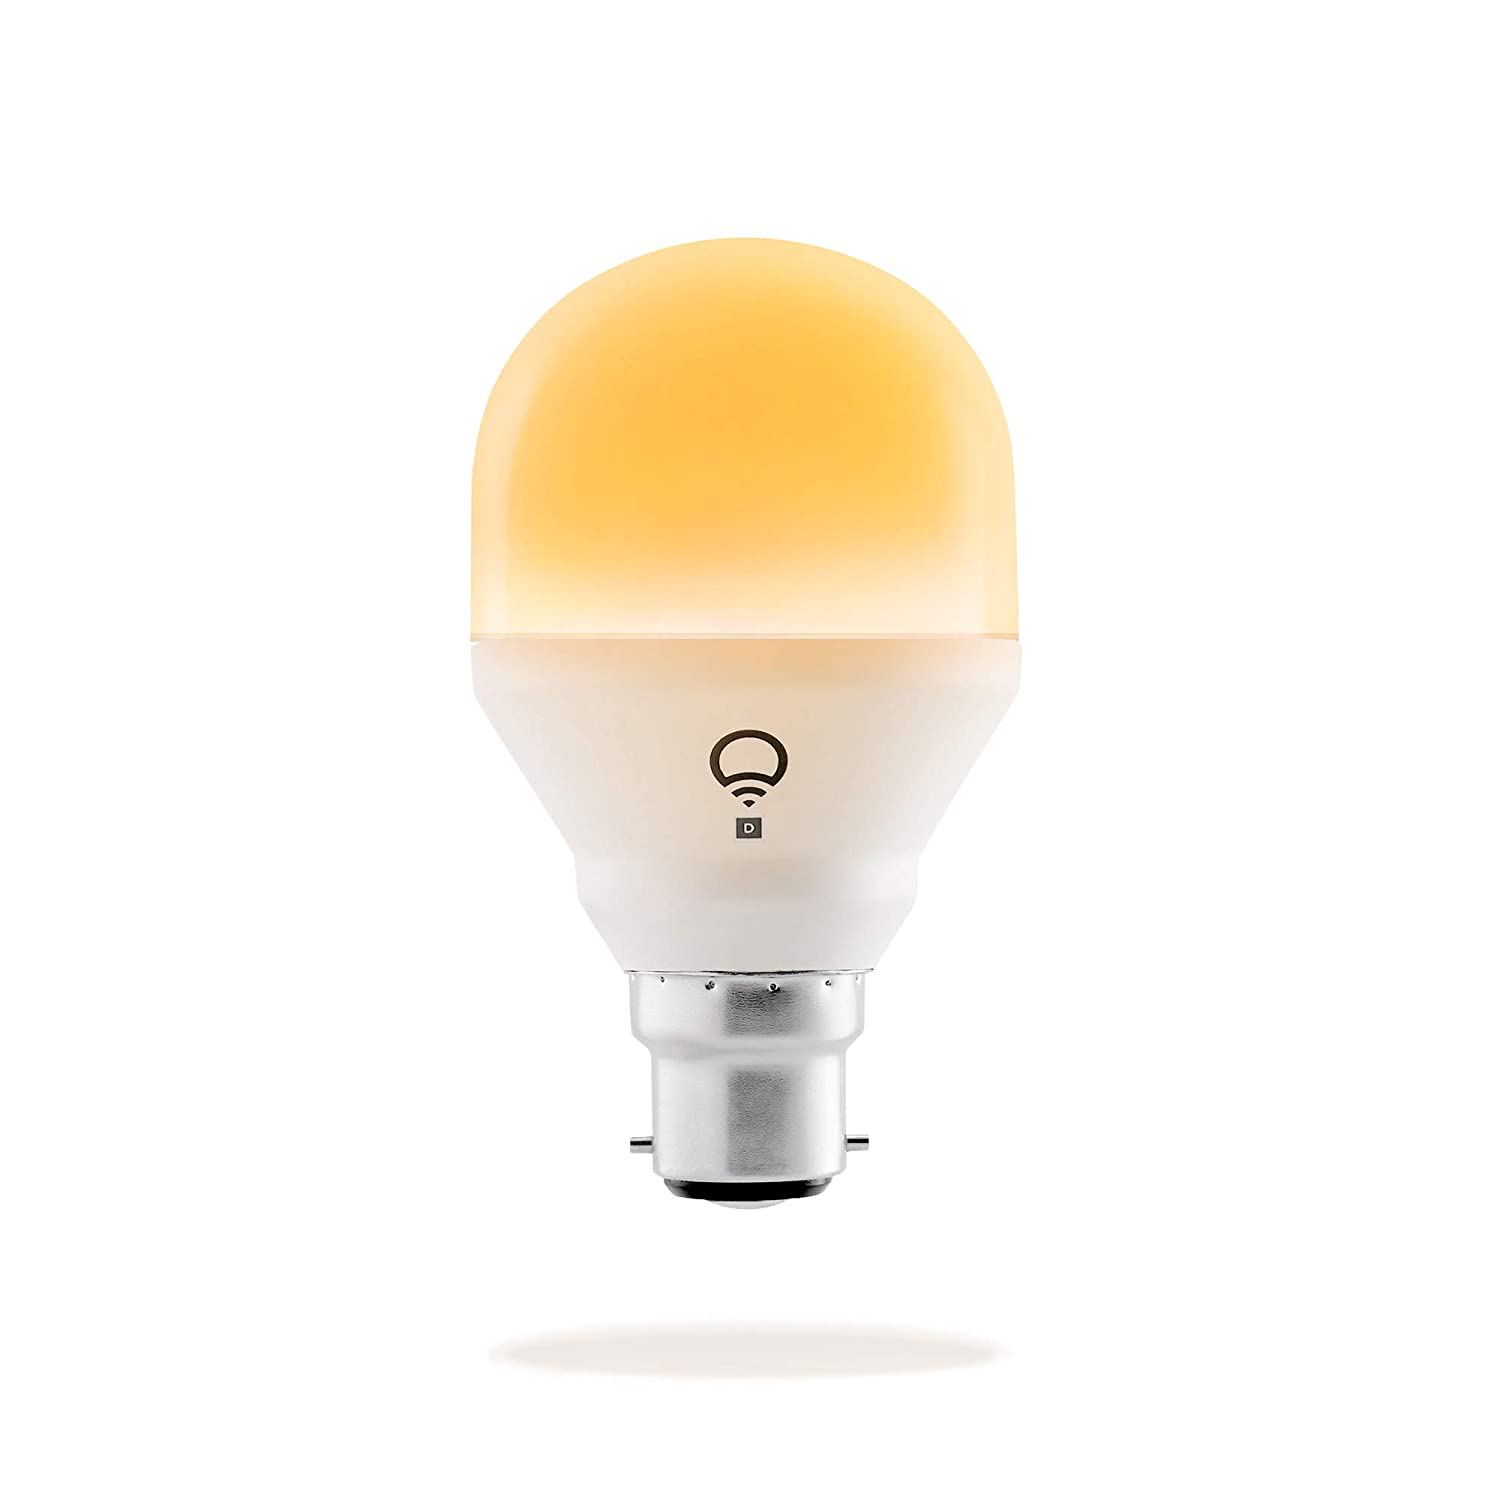 LIFX Mini Day & Dusk (B22) Wi-Fi Smart LED Light Bulb adjustable, dimmable, no hub required, works with Alexa, Apple HomeKit and the Google Assistant L3A19MTW08B22